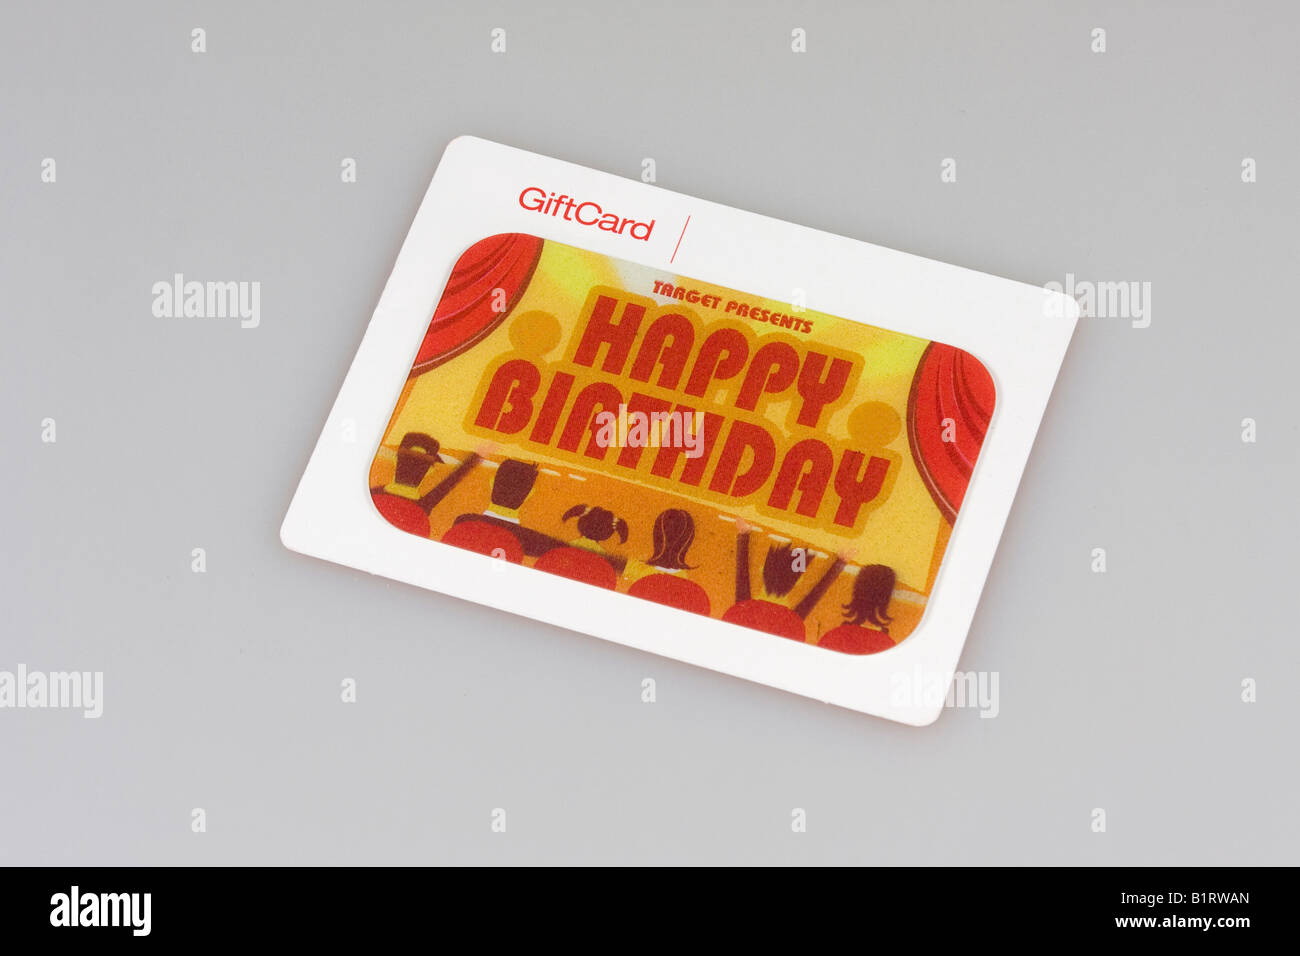 Target gift certificate, gift card Stock Photo: 18349821 - Alamy